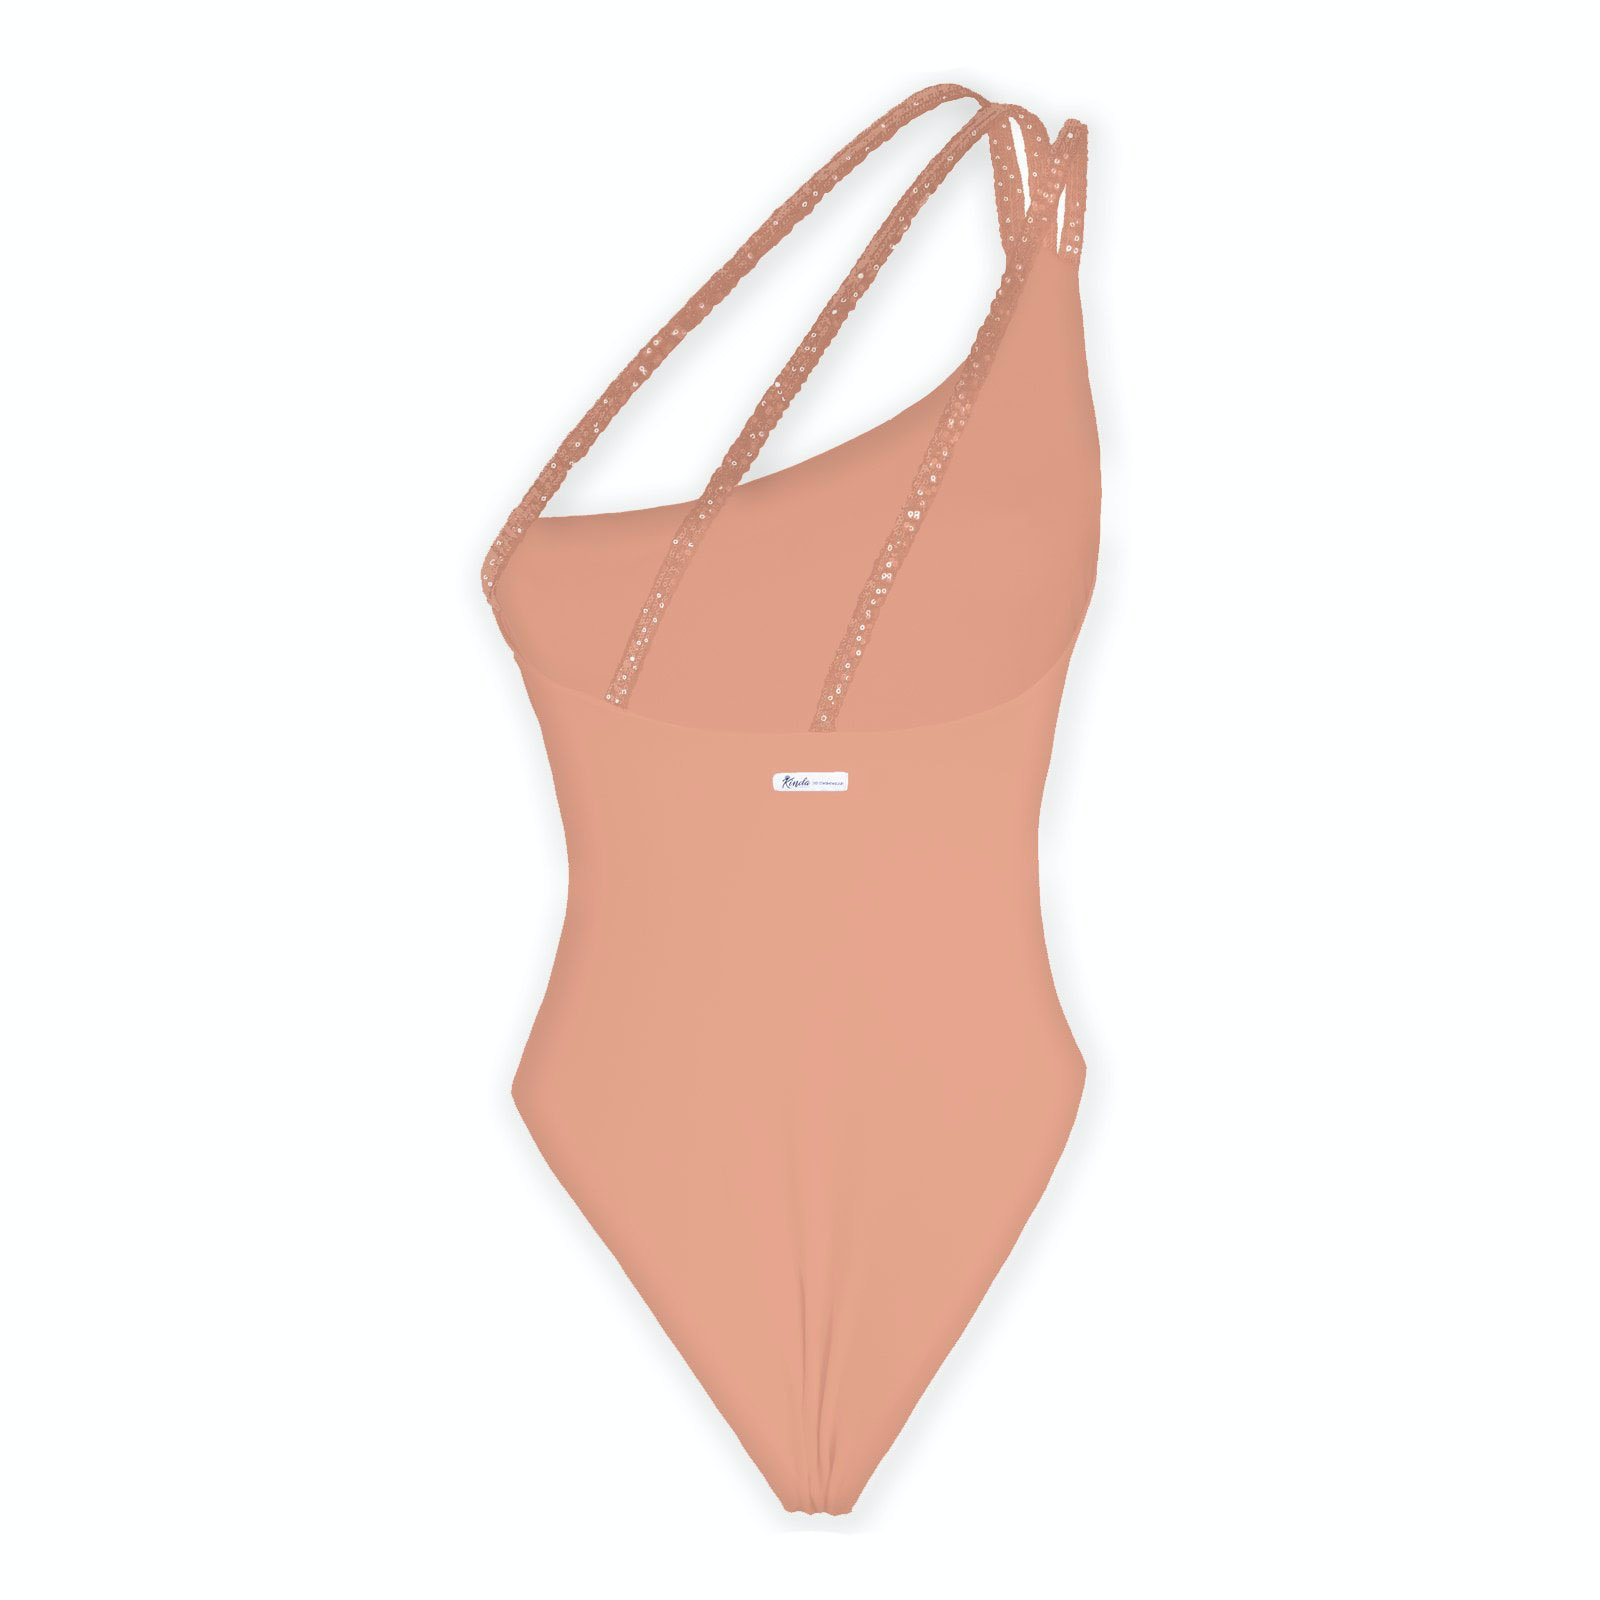 Kinda 3D Swimwear one piece salmon swimsuit costume intero monospalla elegante glamour costume da bagno arancione salmone pesca estate 2021 2021 summer 2020 2021 body color carne arancione nude bodysuit skims